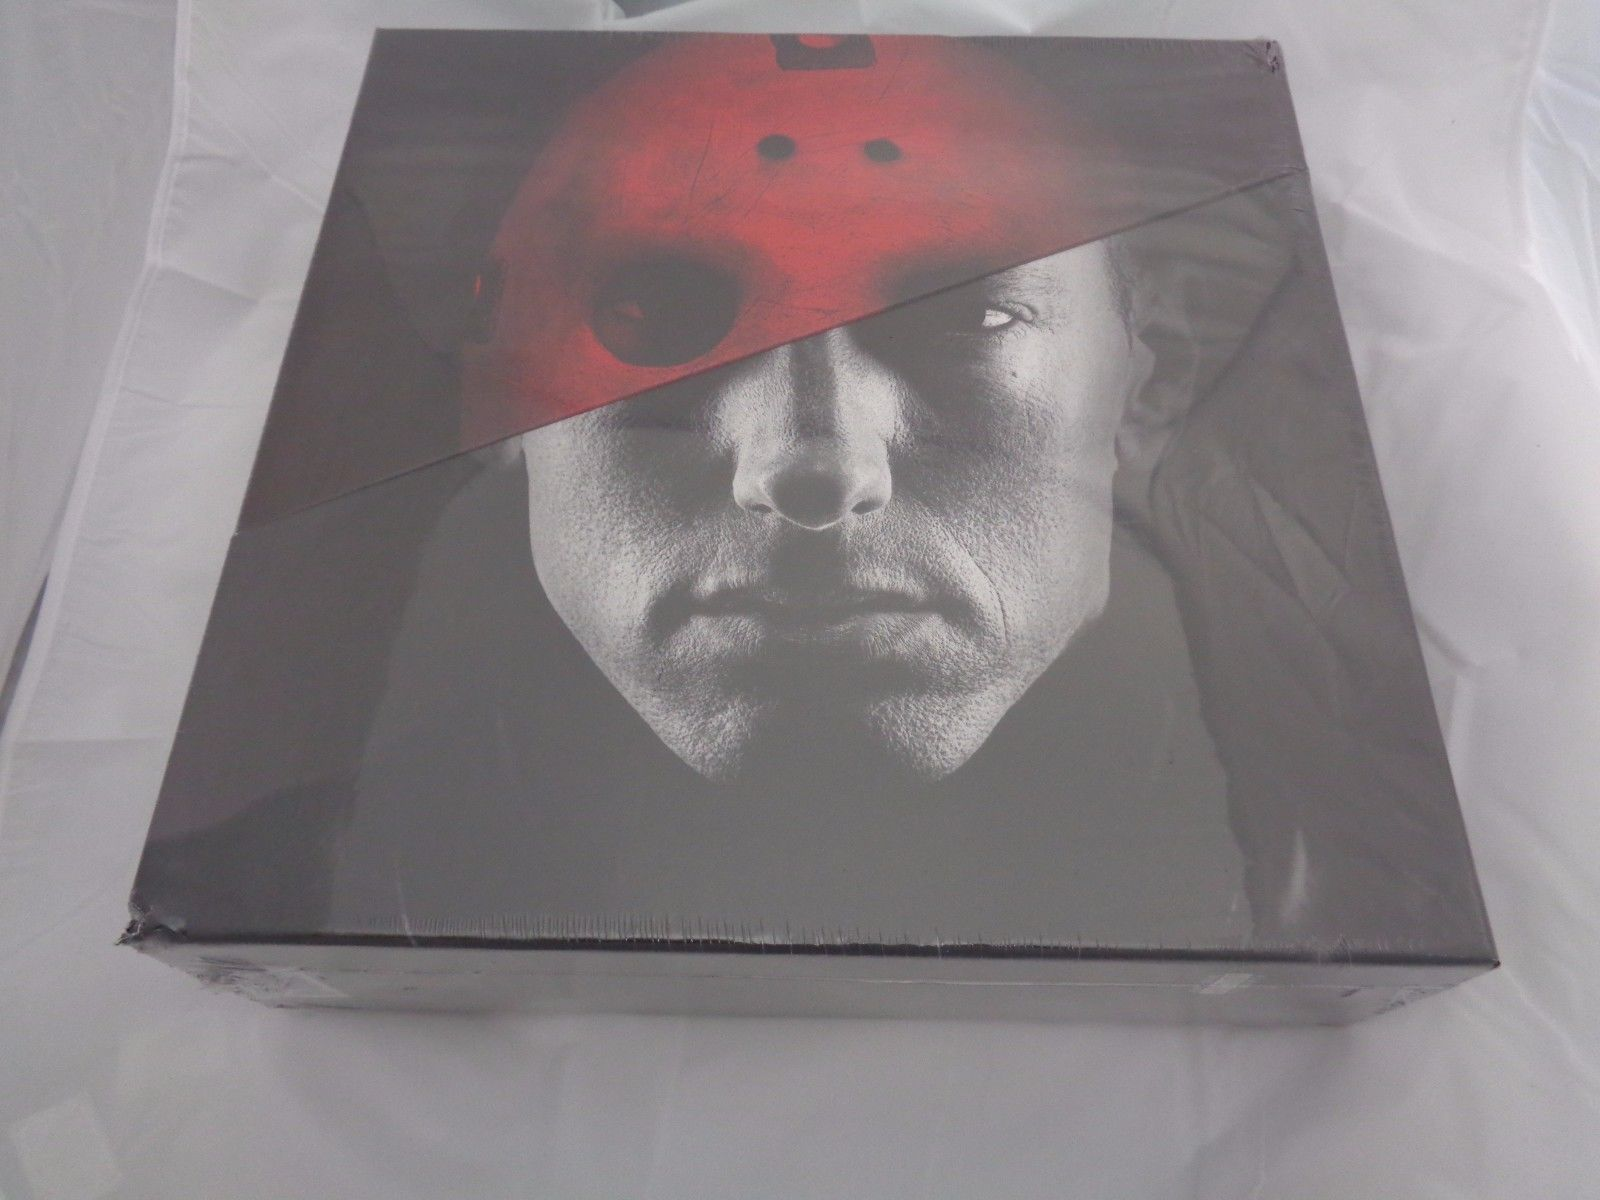 Brand New Eminem The Vinyl Lp Record Limited Edition 10 Lp